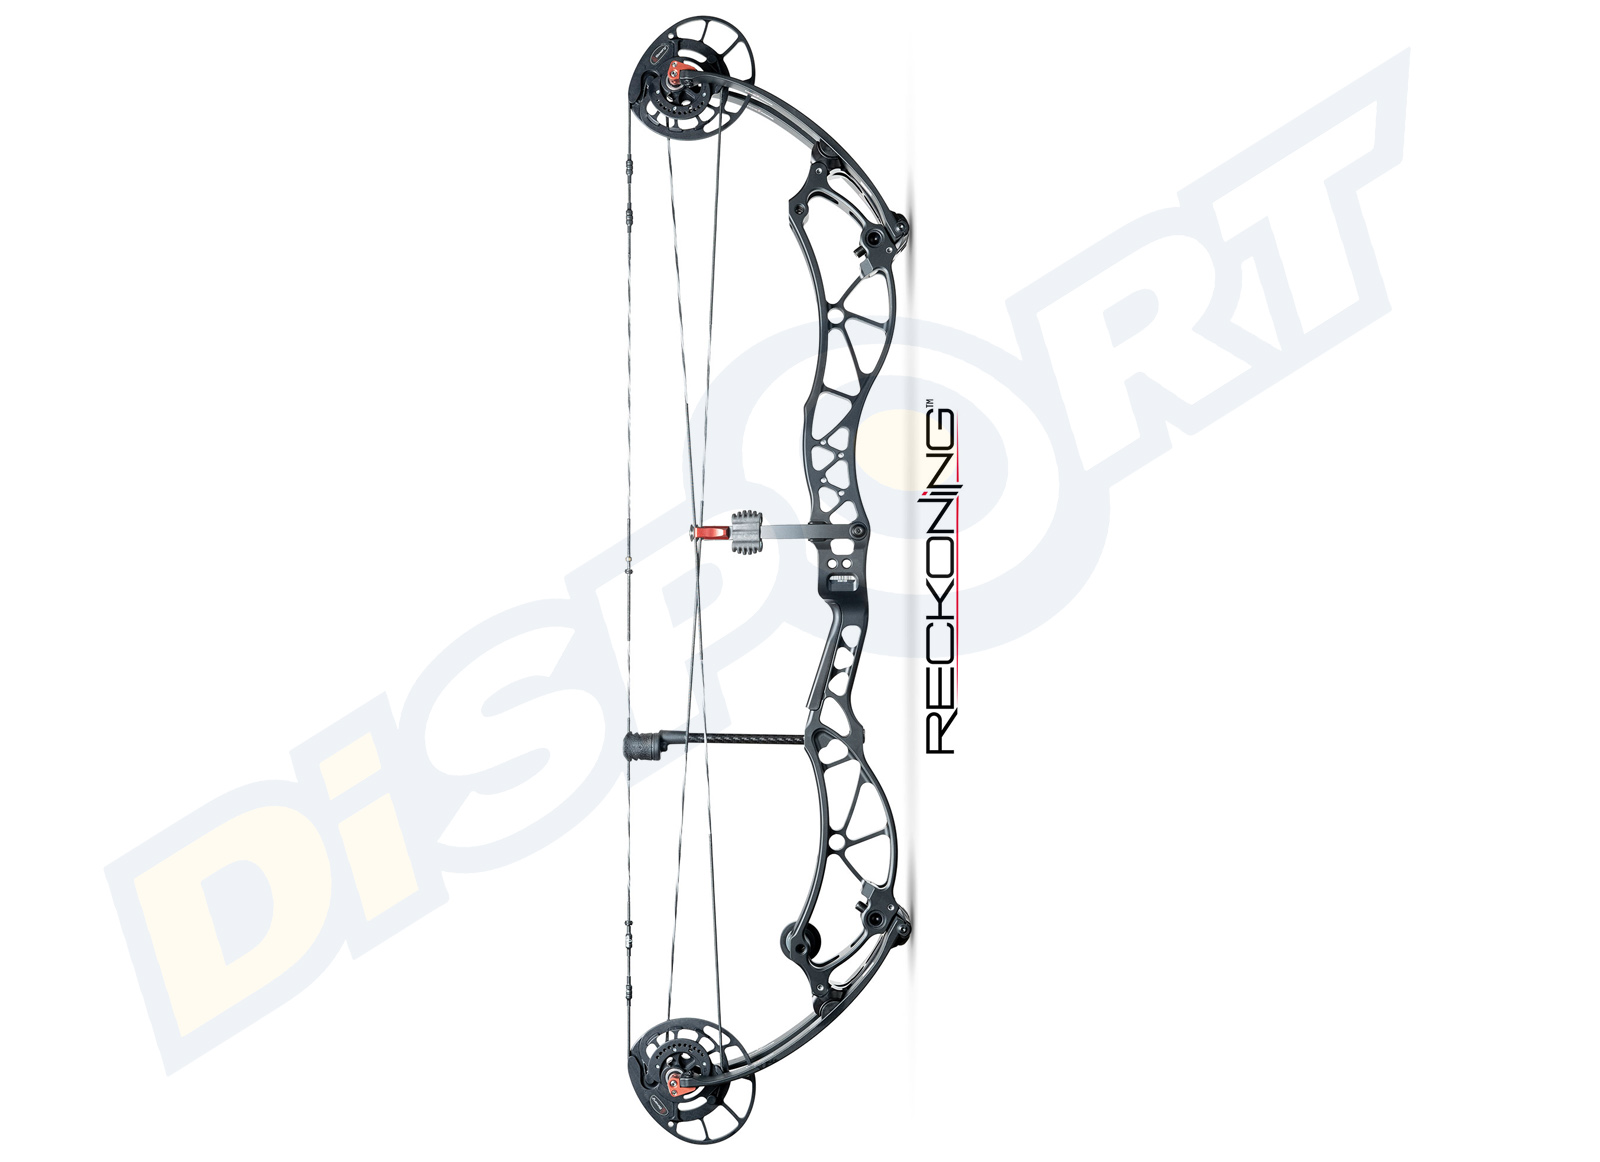 BOWTECH ARCO COMPOUND RECKONING 2019